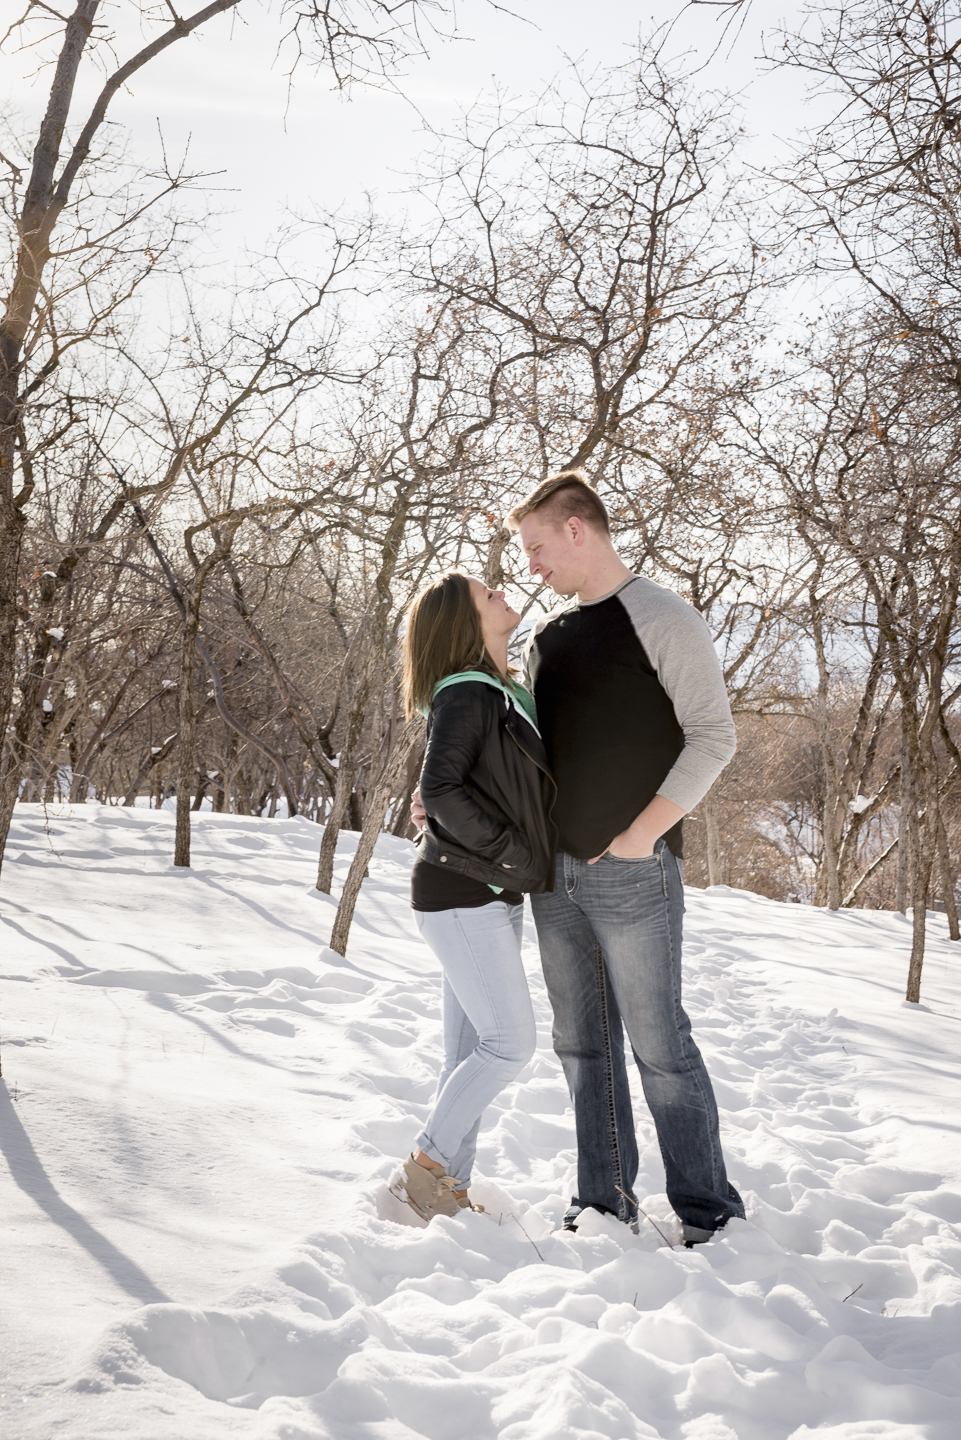 savage_couple_portrait_snow_pine_utah_Christin-5.jpg